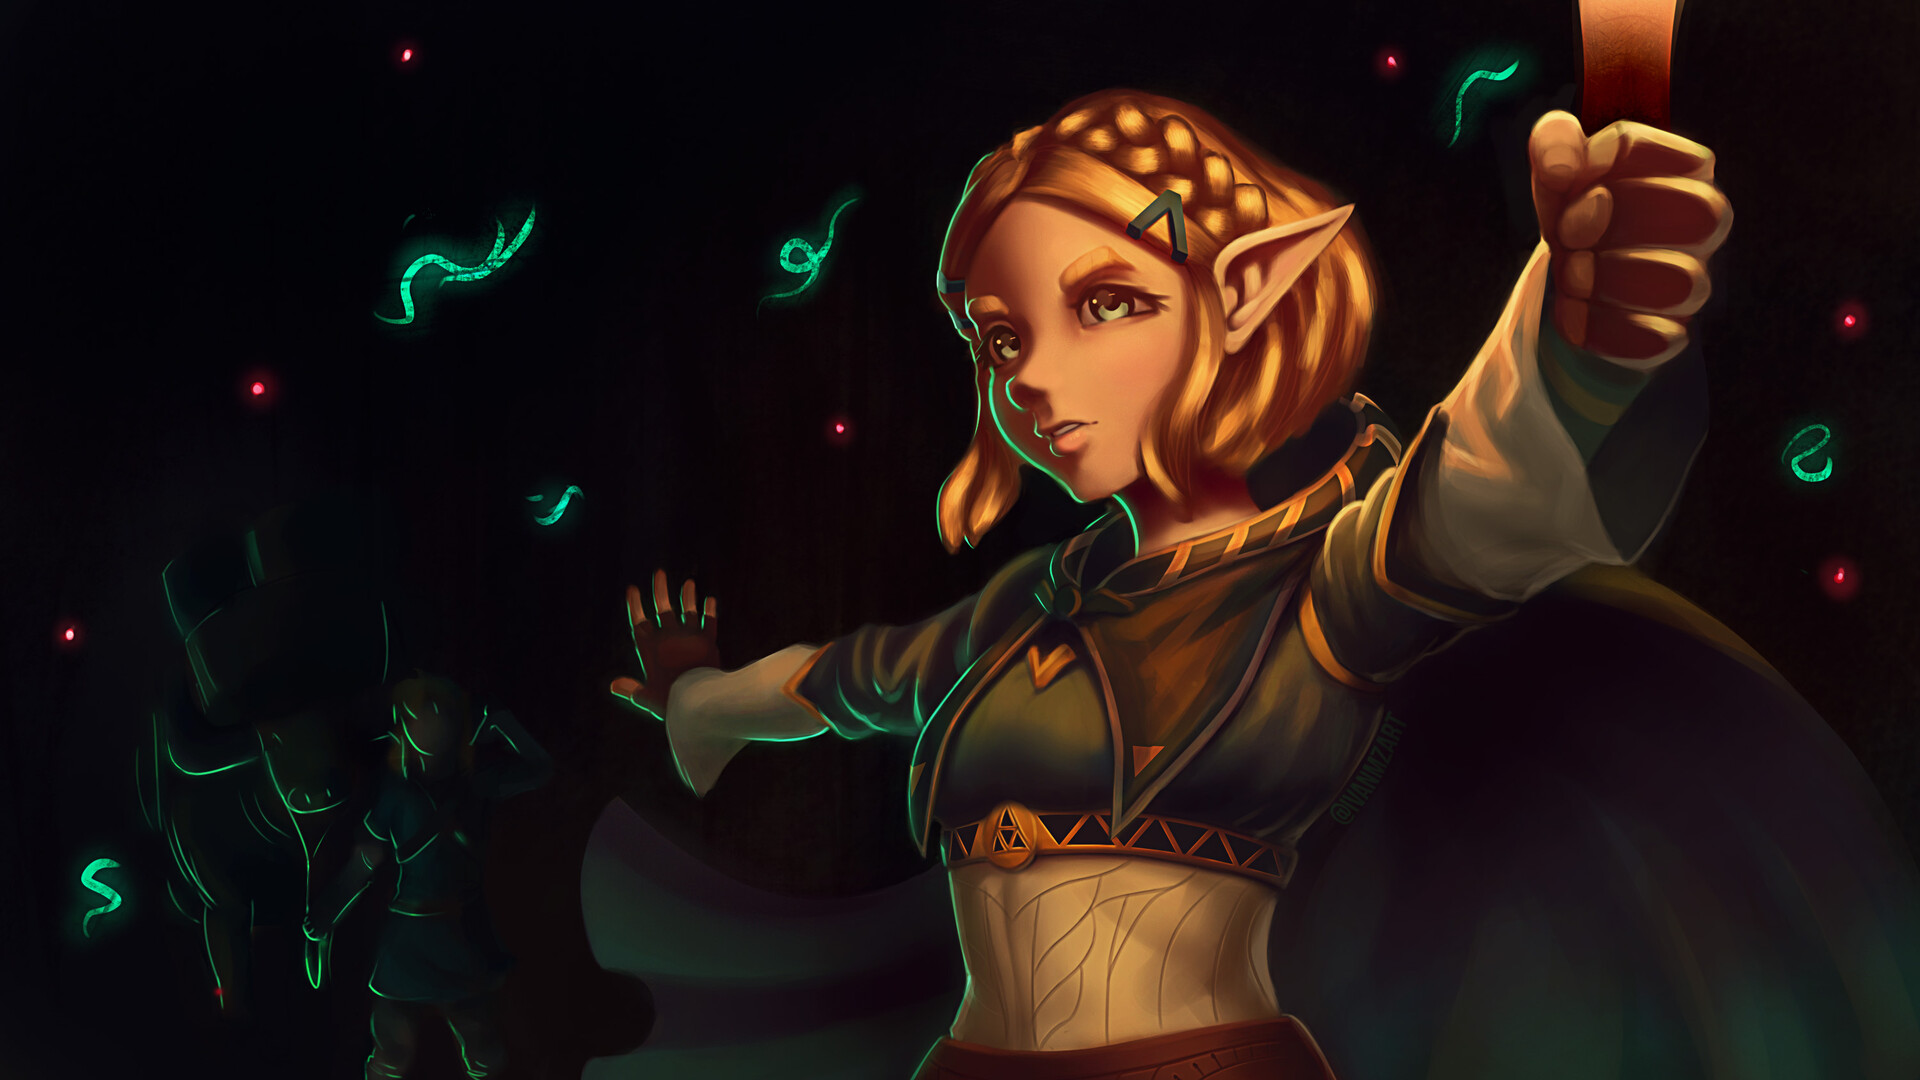 Ivanmz Princess Zelda The Legend Of Zelda Breath Of